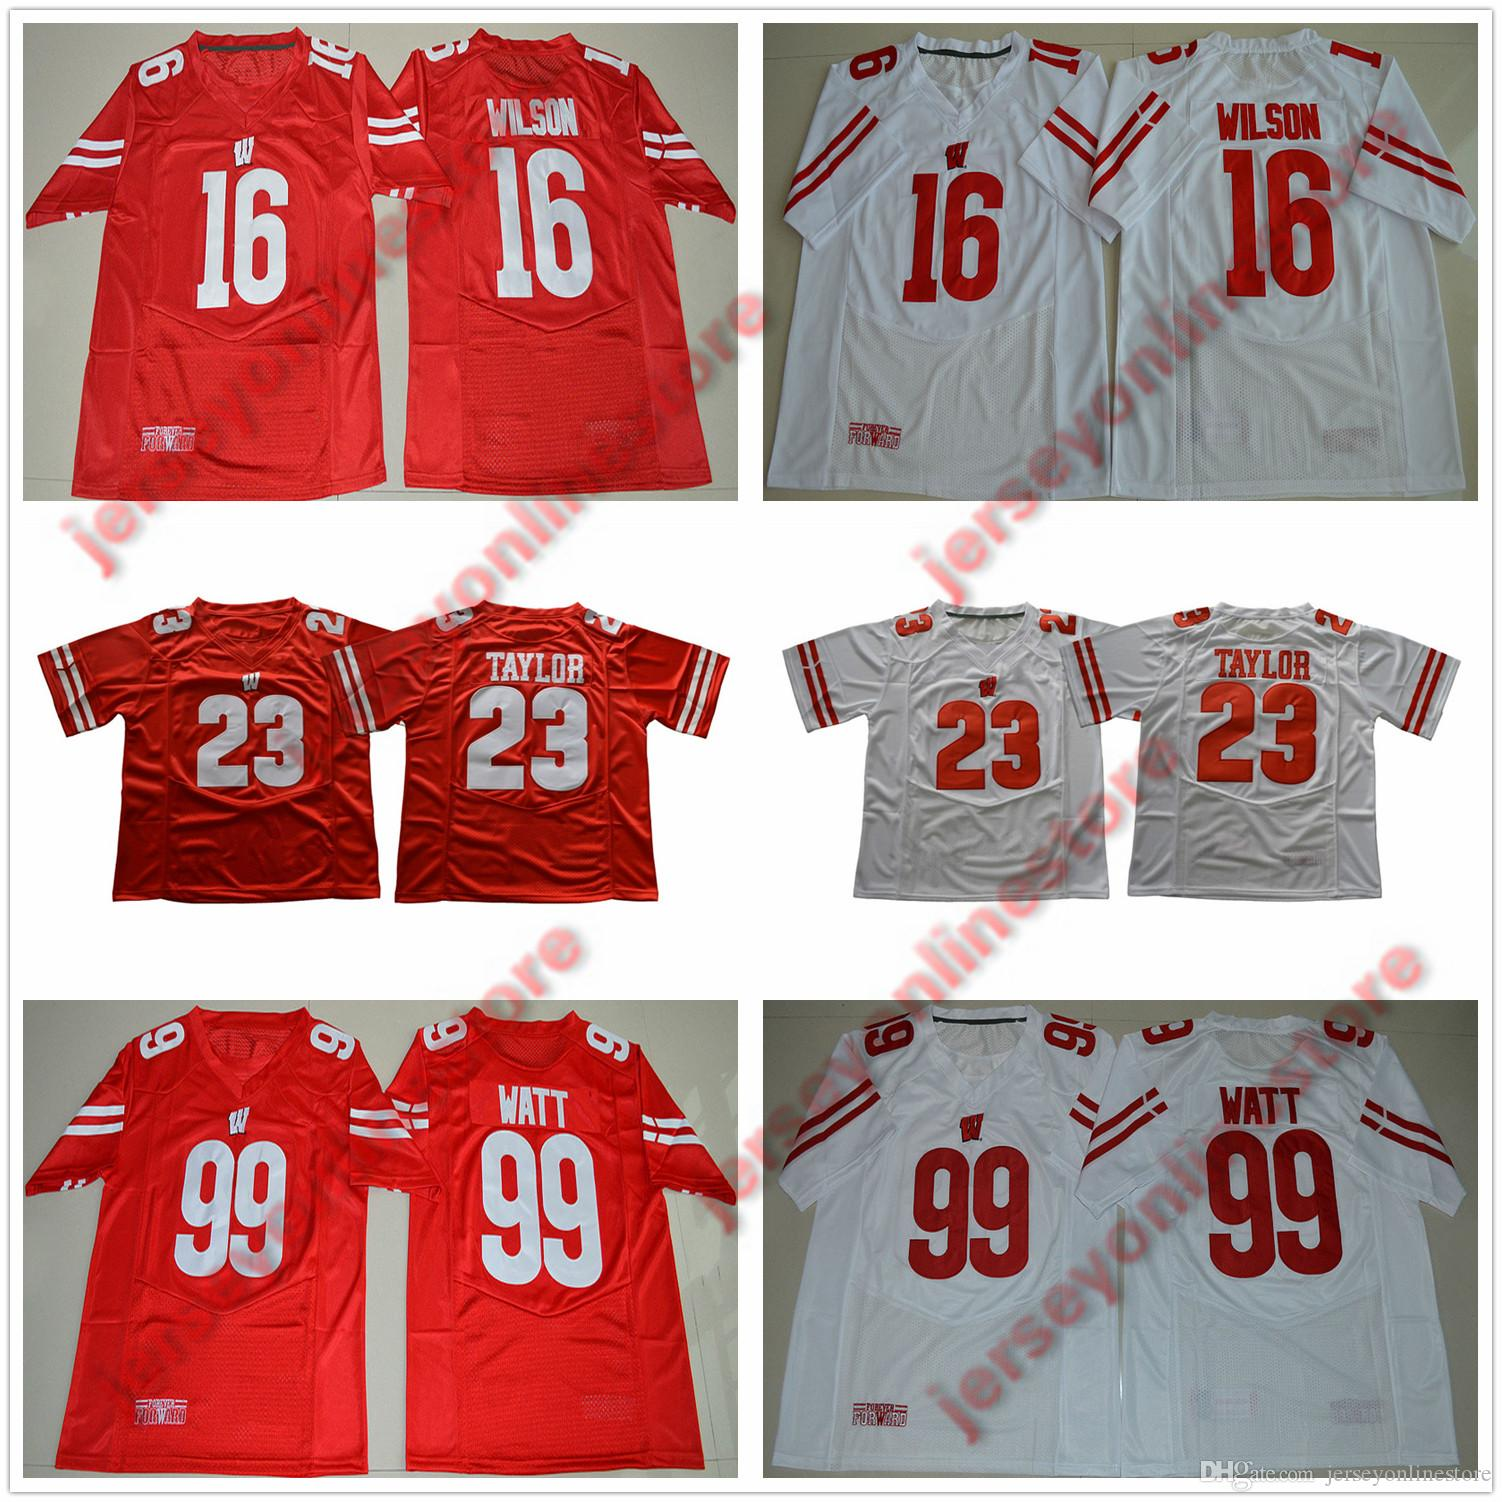 cheaper 1655d 50ac9 spain jj watt stitched jersey e567c 2f5bf